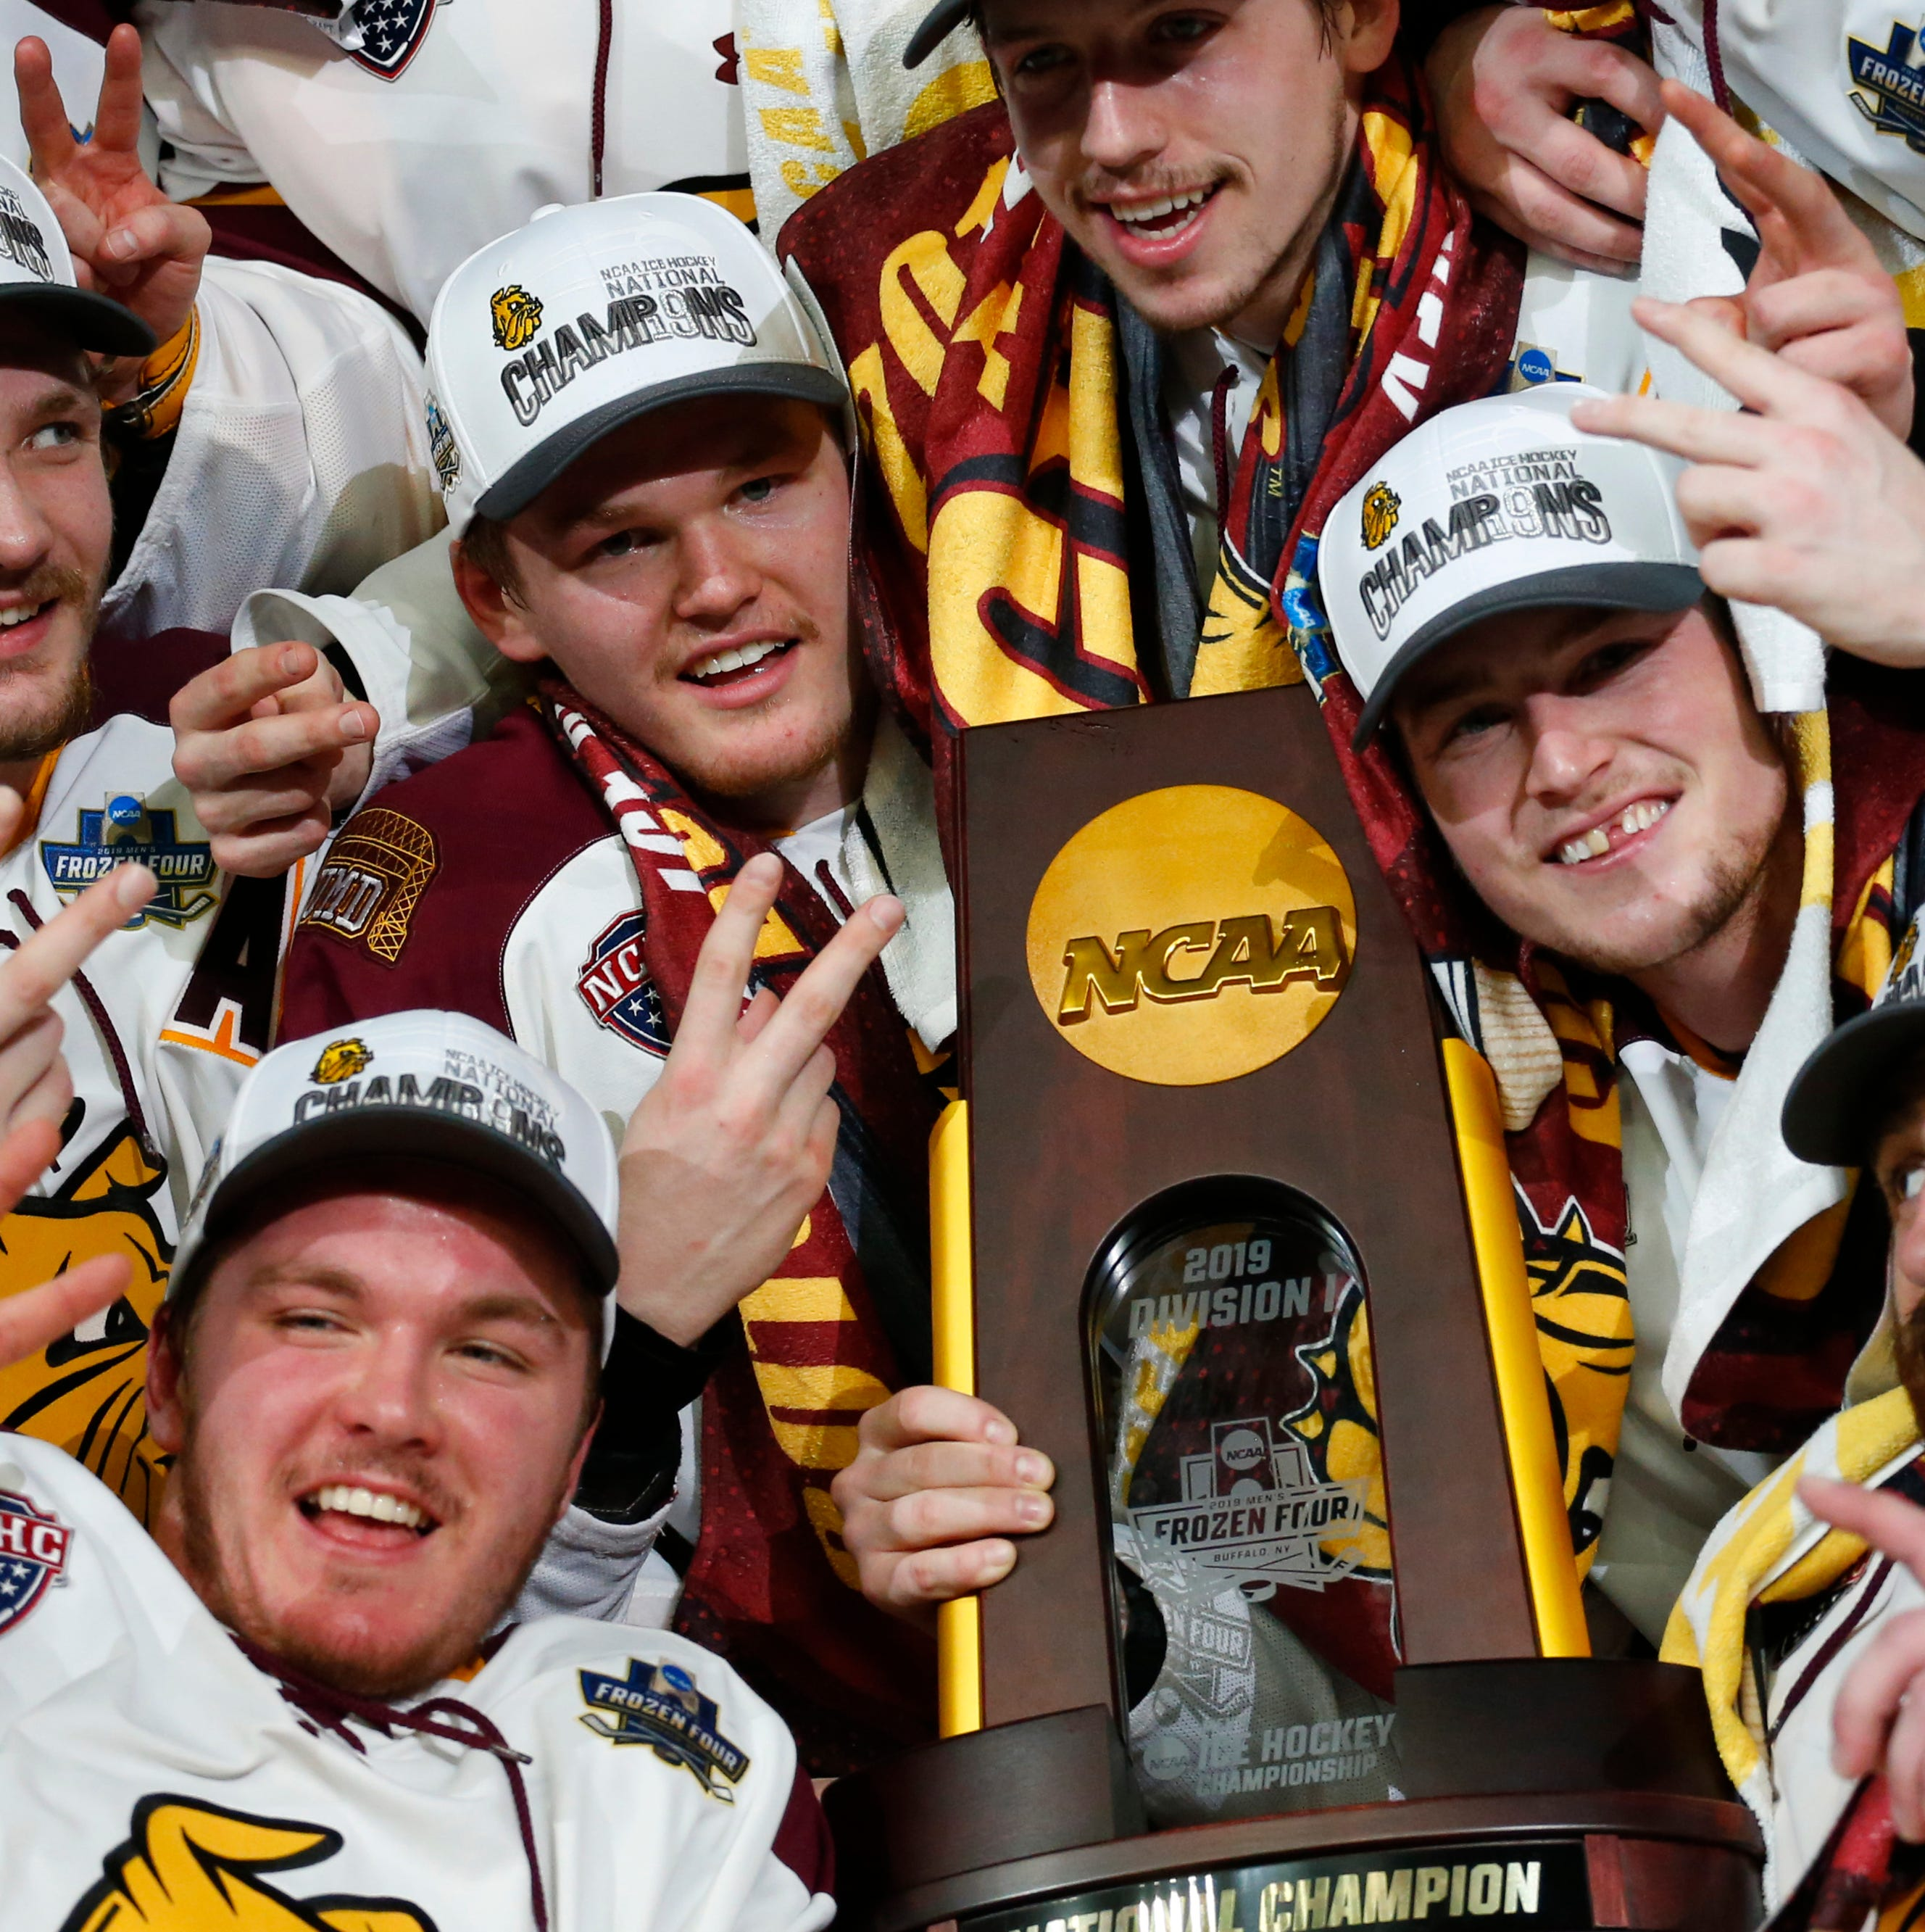 College hockey: Minnesota Duluth on top of our early 2019-20 season poll